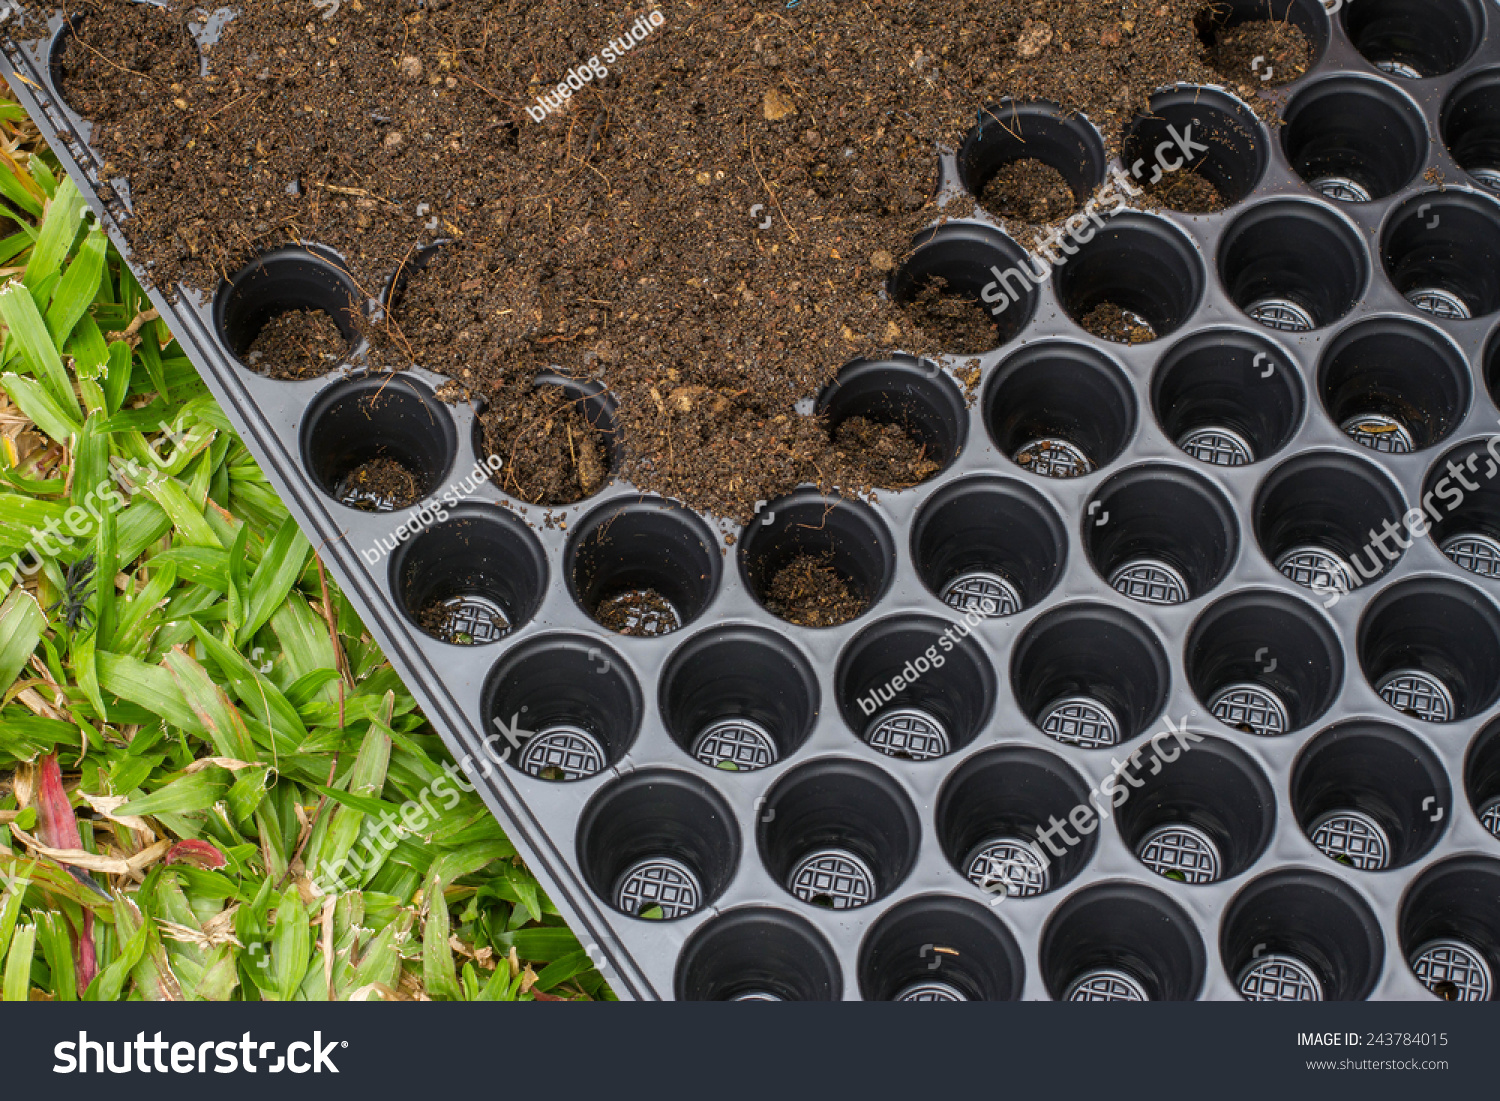 seed trays full of compost ready for planting vegetable seeds